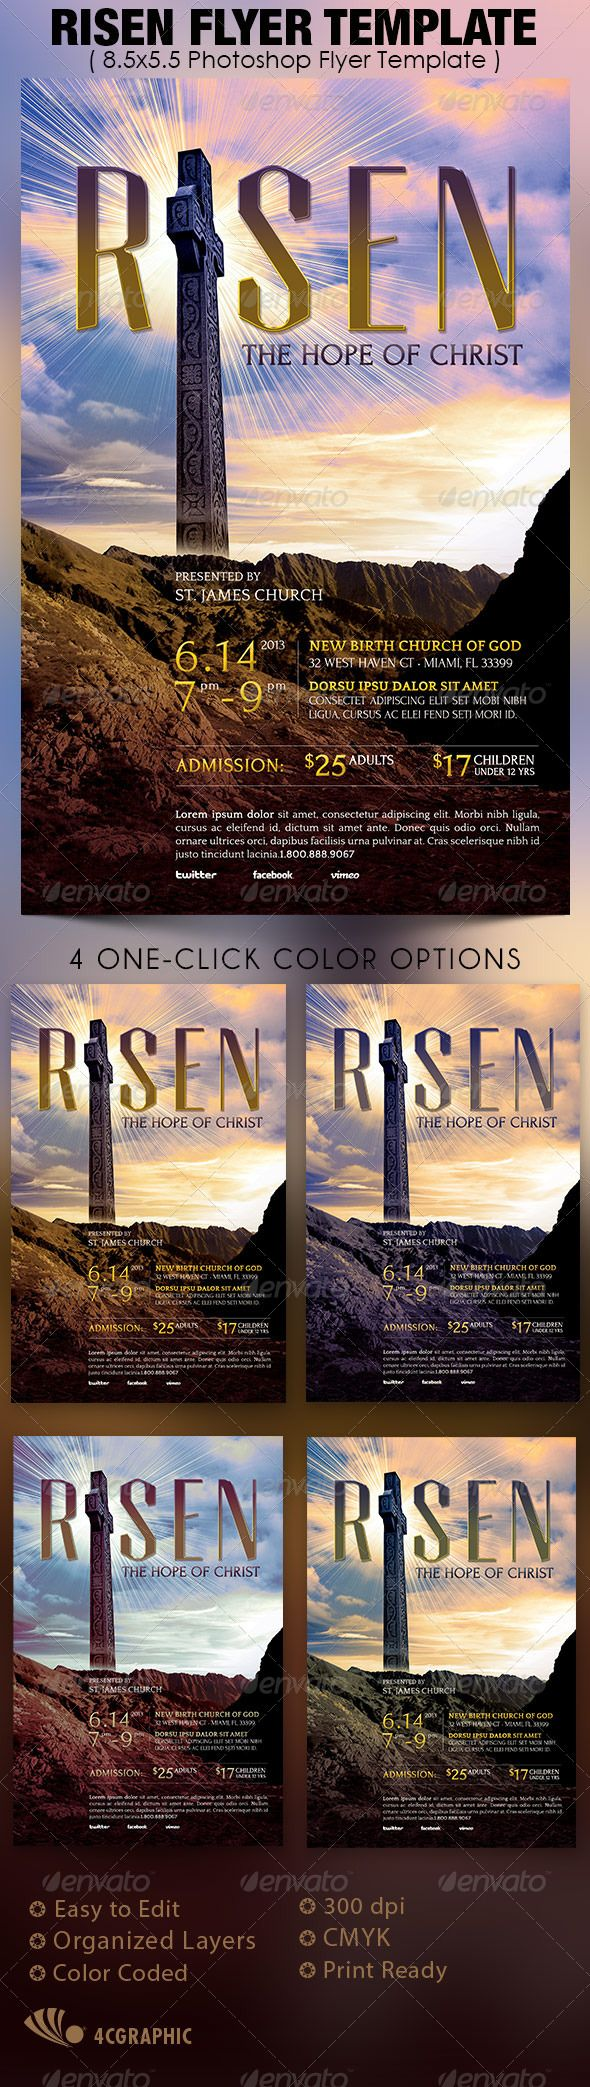 risen church flyer template flyer template church and easter the risen church flyer template is great for any christian event use it for easter